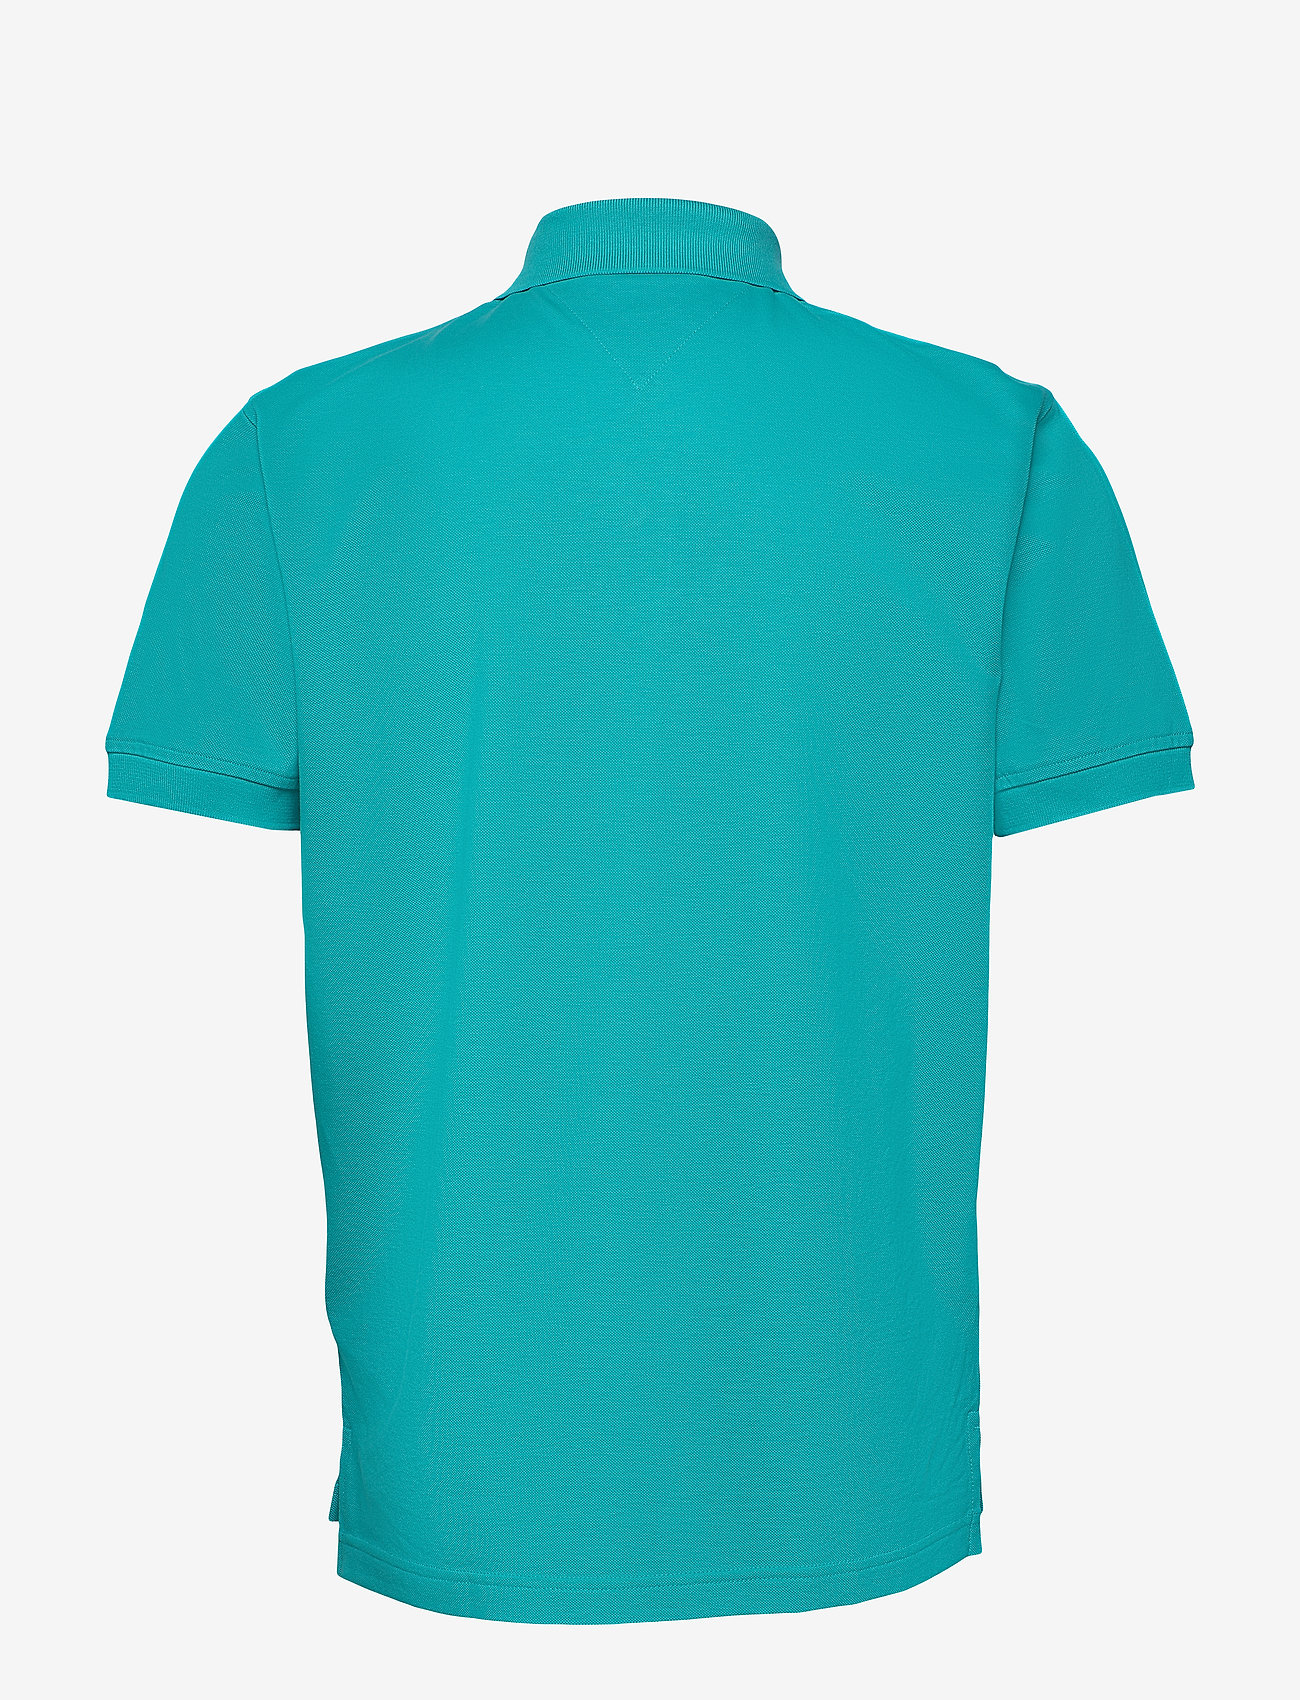 Tommy Hilfiger - TOMMY REGULAR POLO - short-sleeved polos - aquatic teal